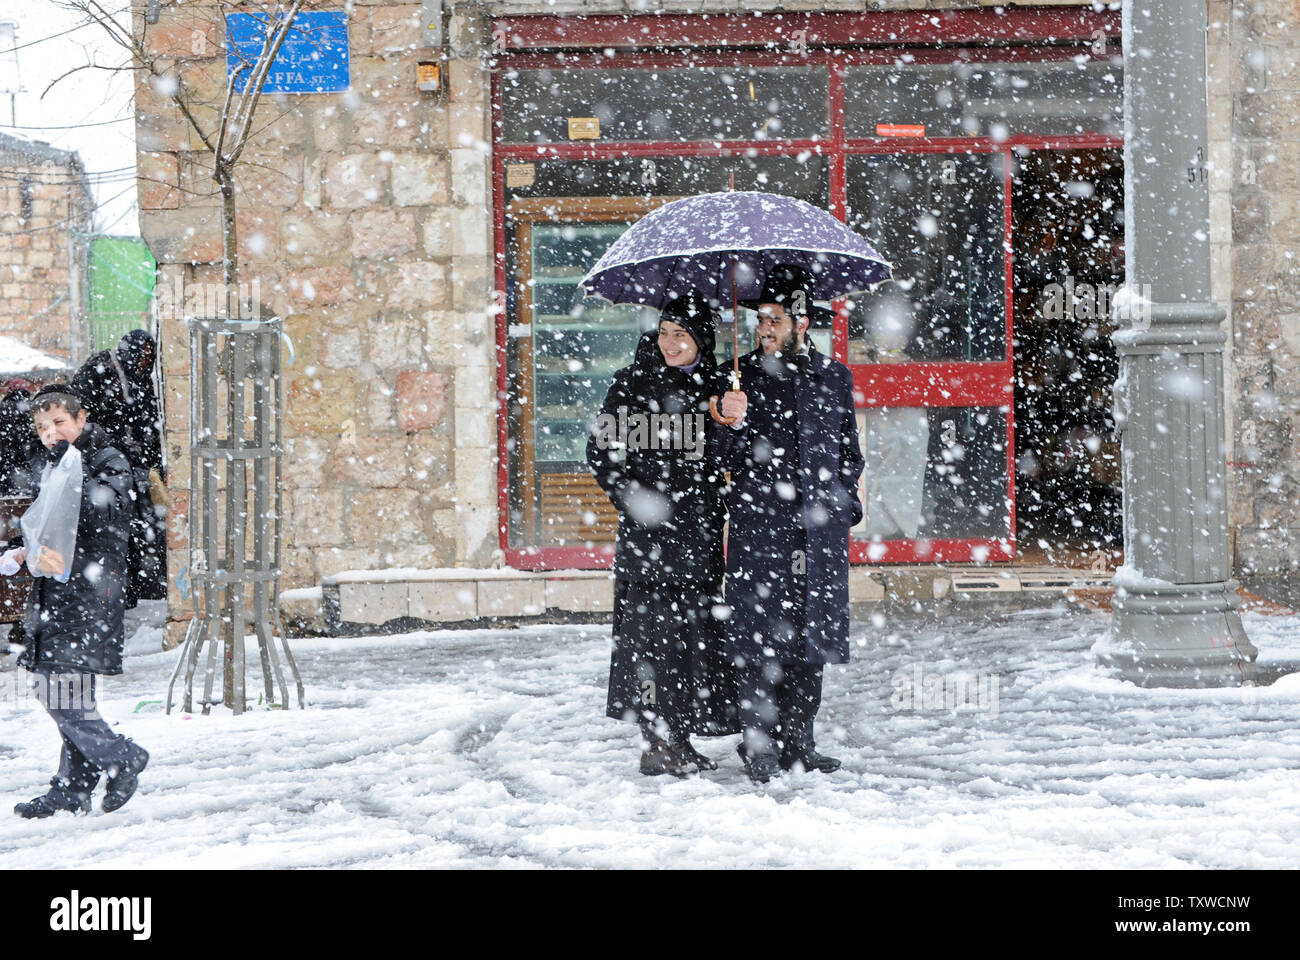 An Ultra-Orthodox Israeli couple takes cover under an umbrella during a rare winter snow storm on Jaffa Road in central Jerusalem, March 2, 2012. Residents of Jerusalem woke to 1.575 inches of snow in the first snow fall in Jerusalem in more than two years.  UPI/Debbie Hill - Stock Image